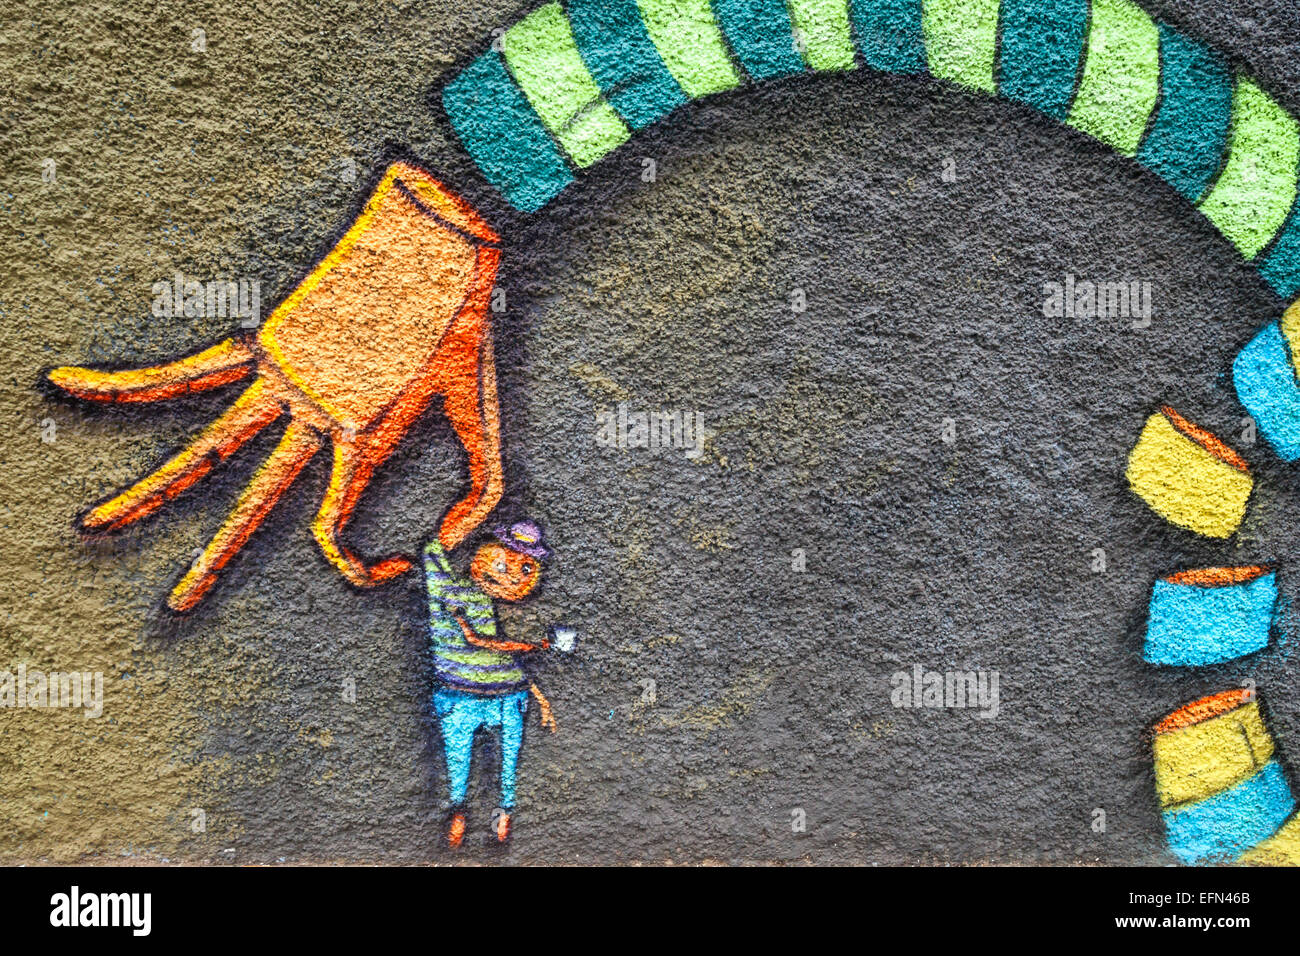 Street art mural of hand holding a little boy decorates a building in Valparaiso, Chile, South America - Stock Image